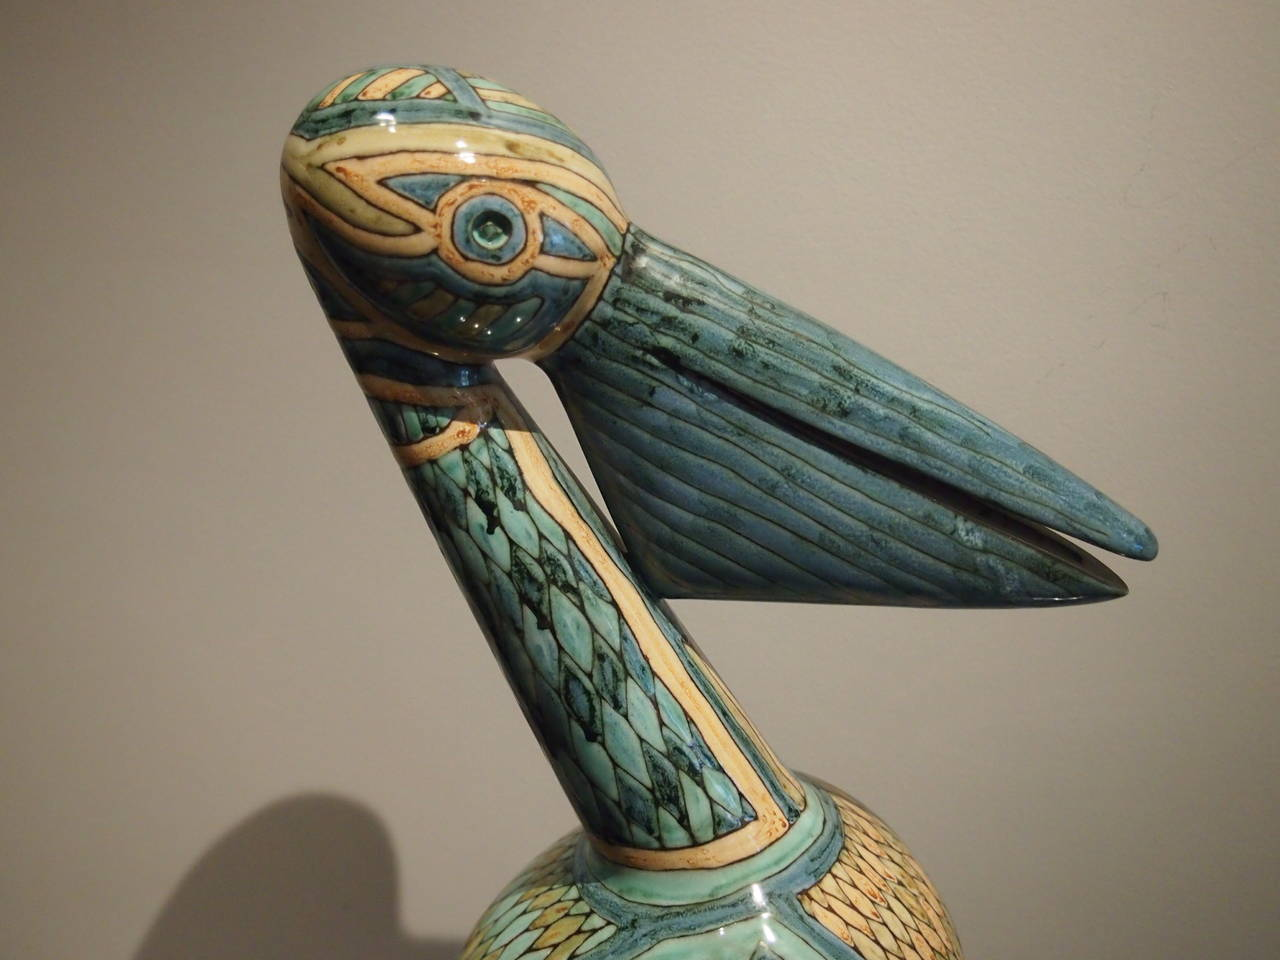 Pelican Ceramic Sculpture with Cloisonné Enamel, French, 1960 In Excellent Condition For Sale In Paris, FR